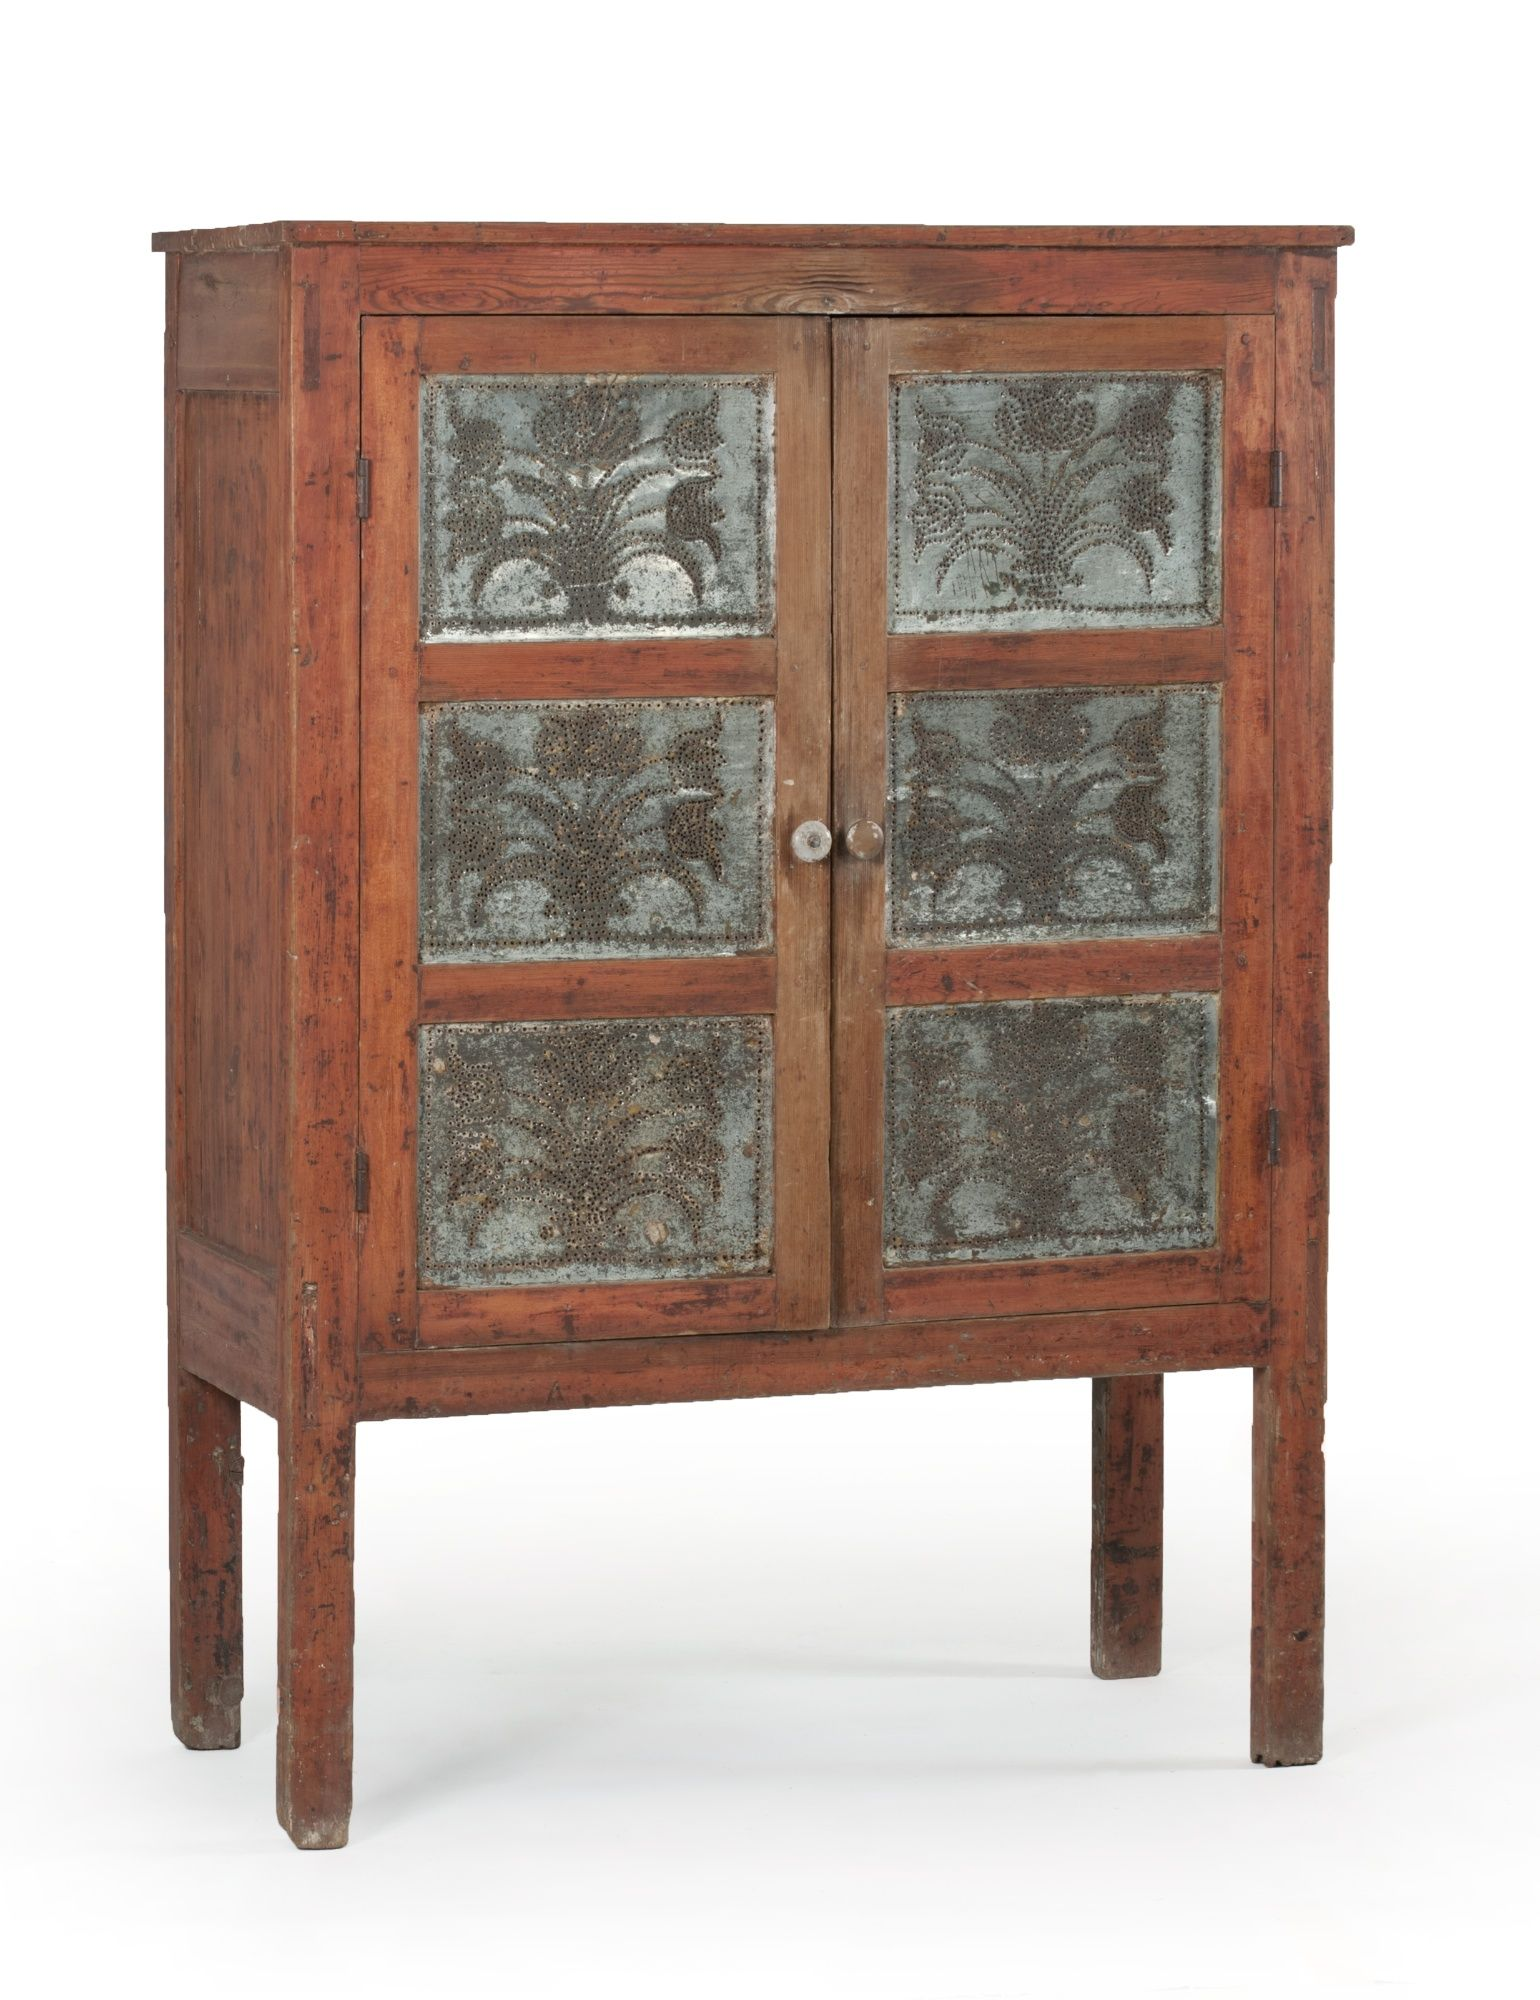 Furniture At Auction Americana And Paintings At Eldred S Auction House Primitive Furniture Pie Safe Furniture